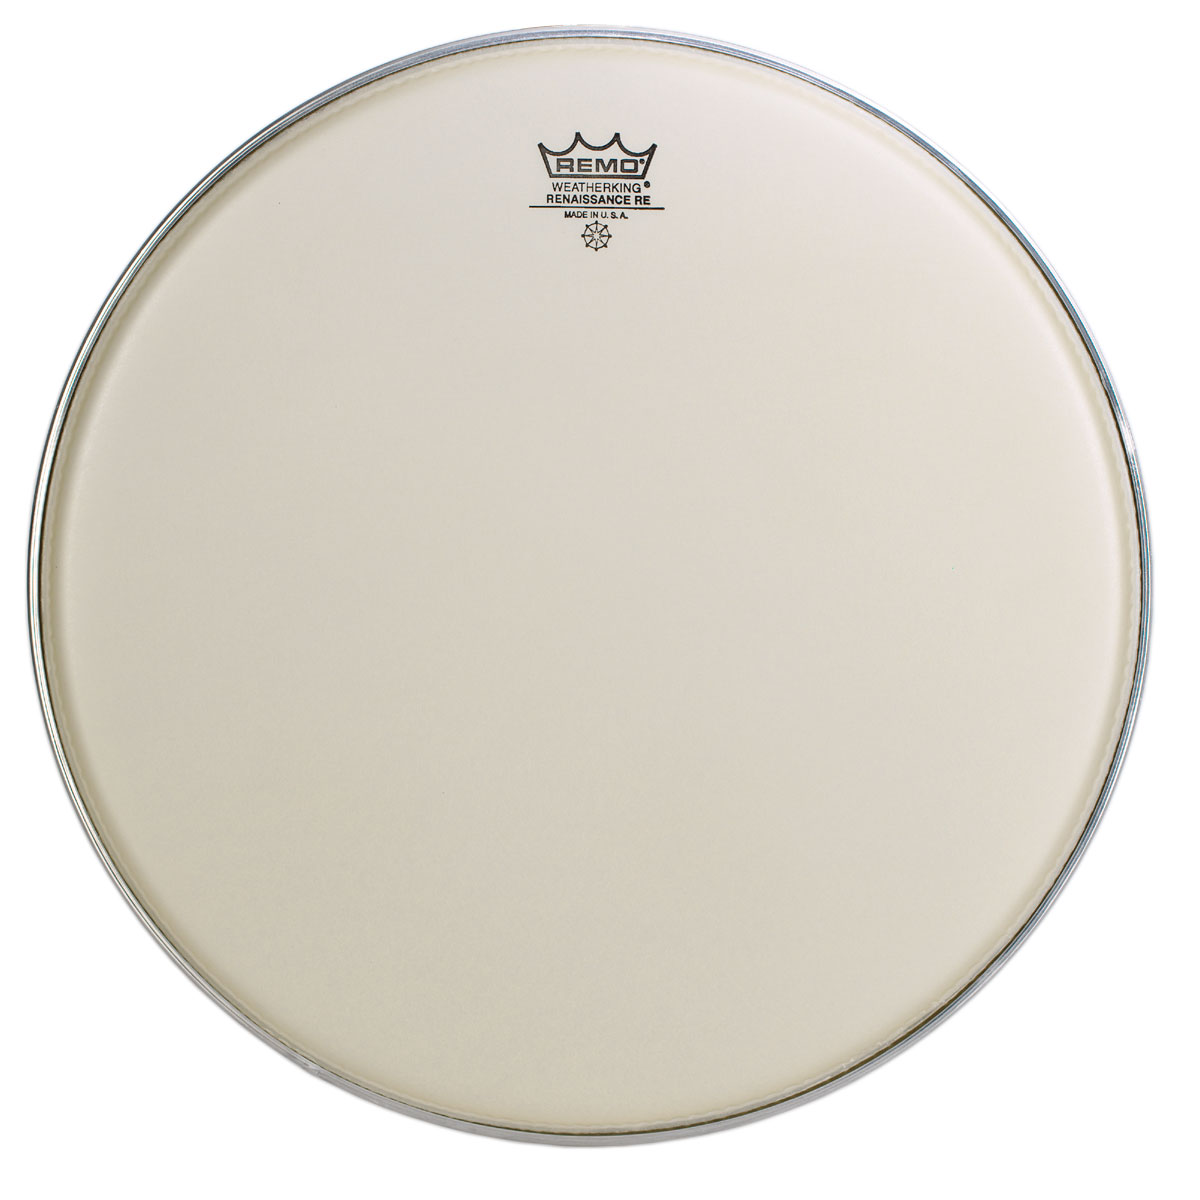 "Remo 10"" Emperor Renaissance Crimplock Marching Tenor Drum Head"